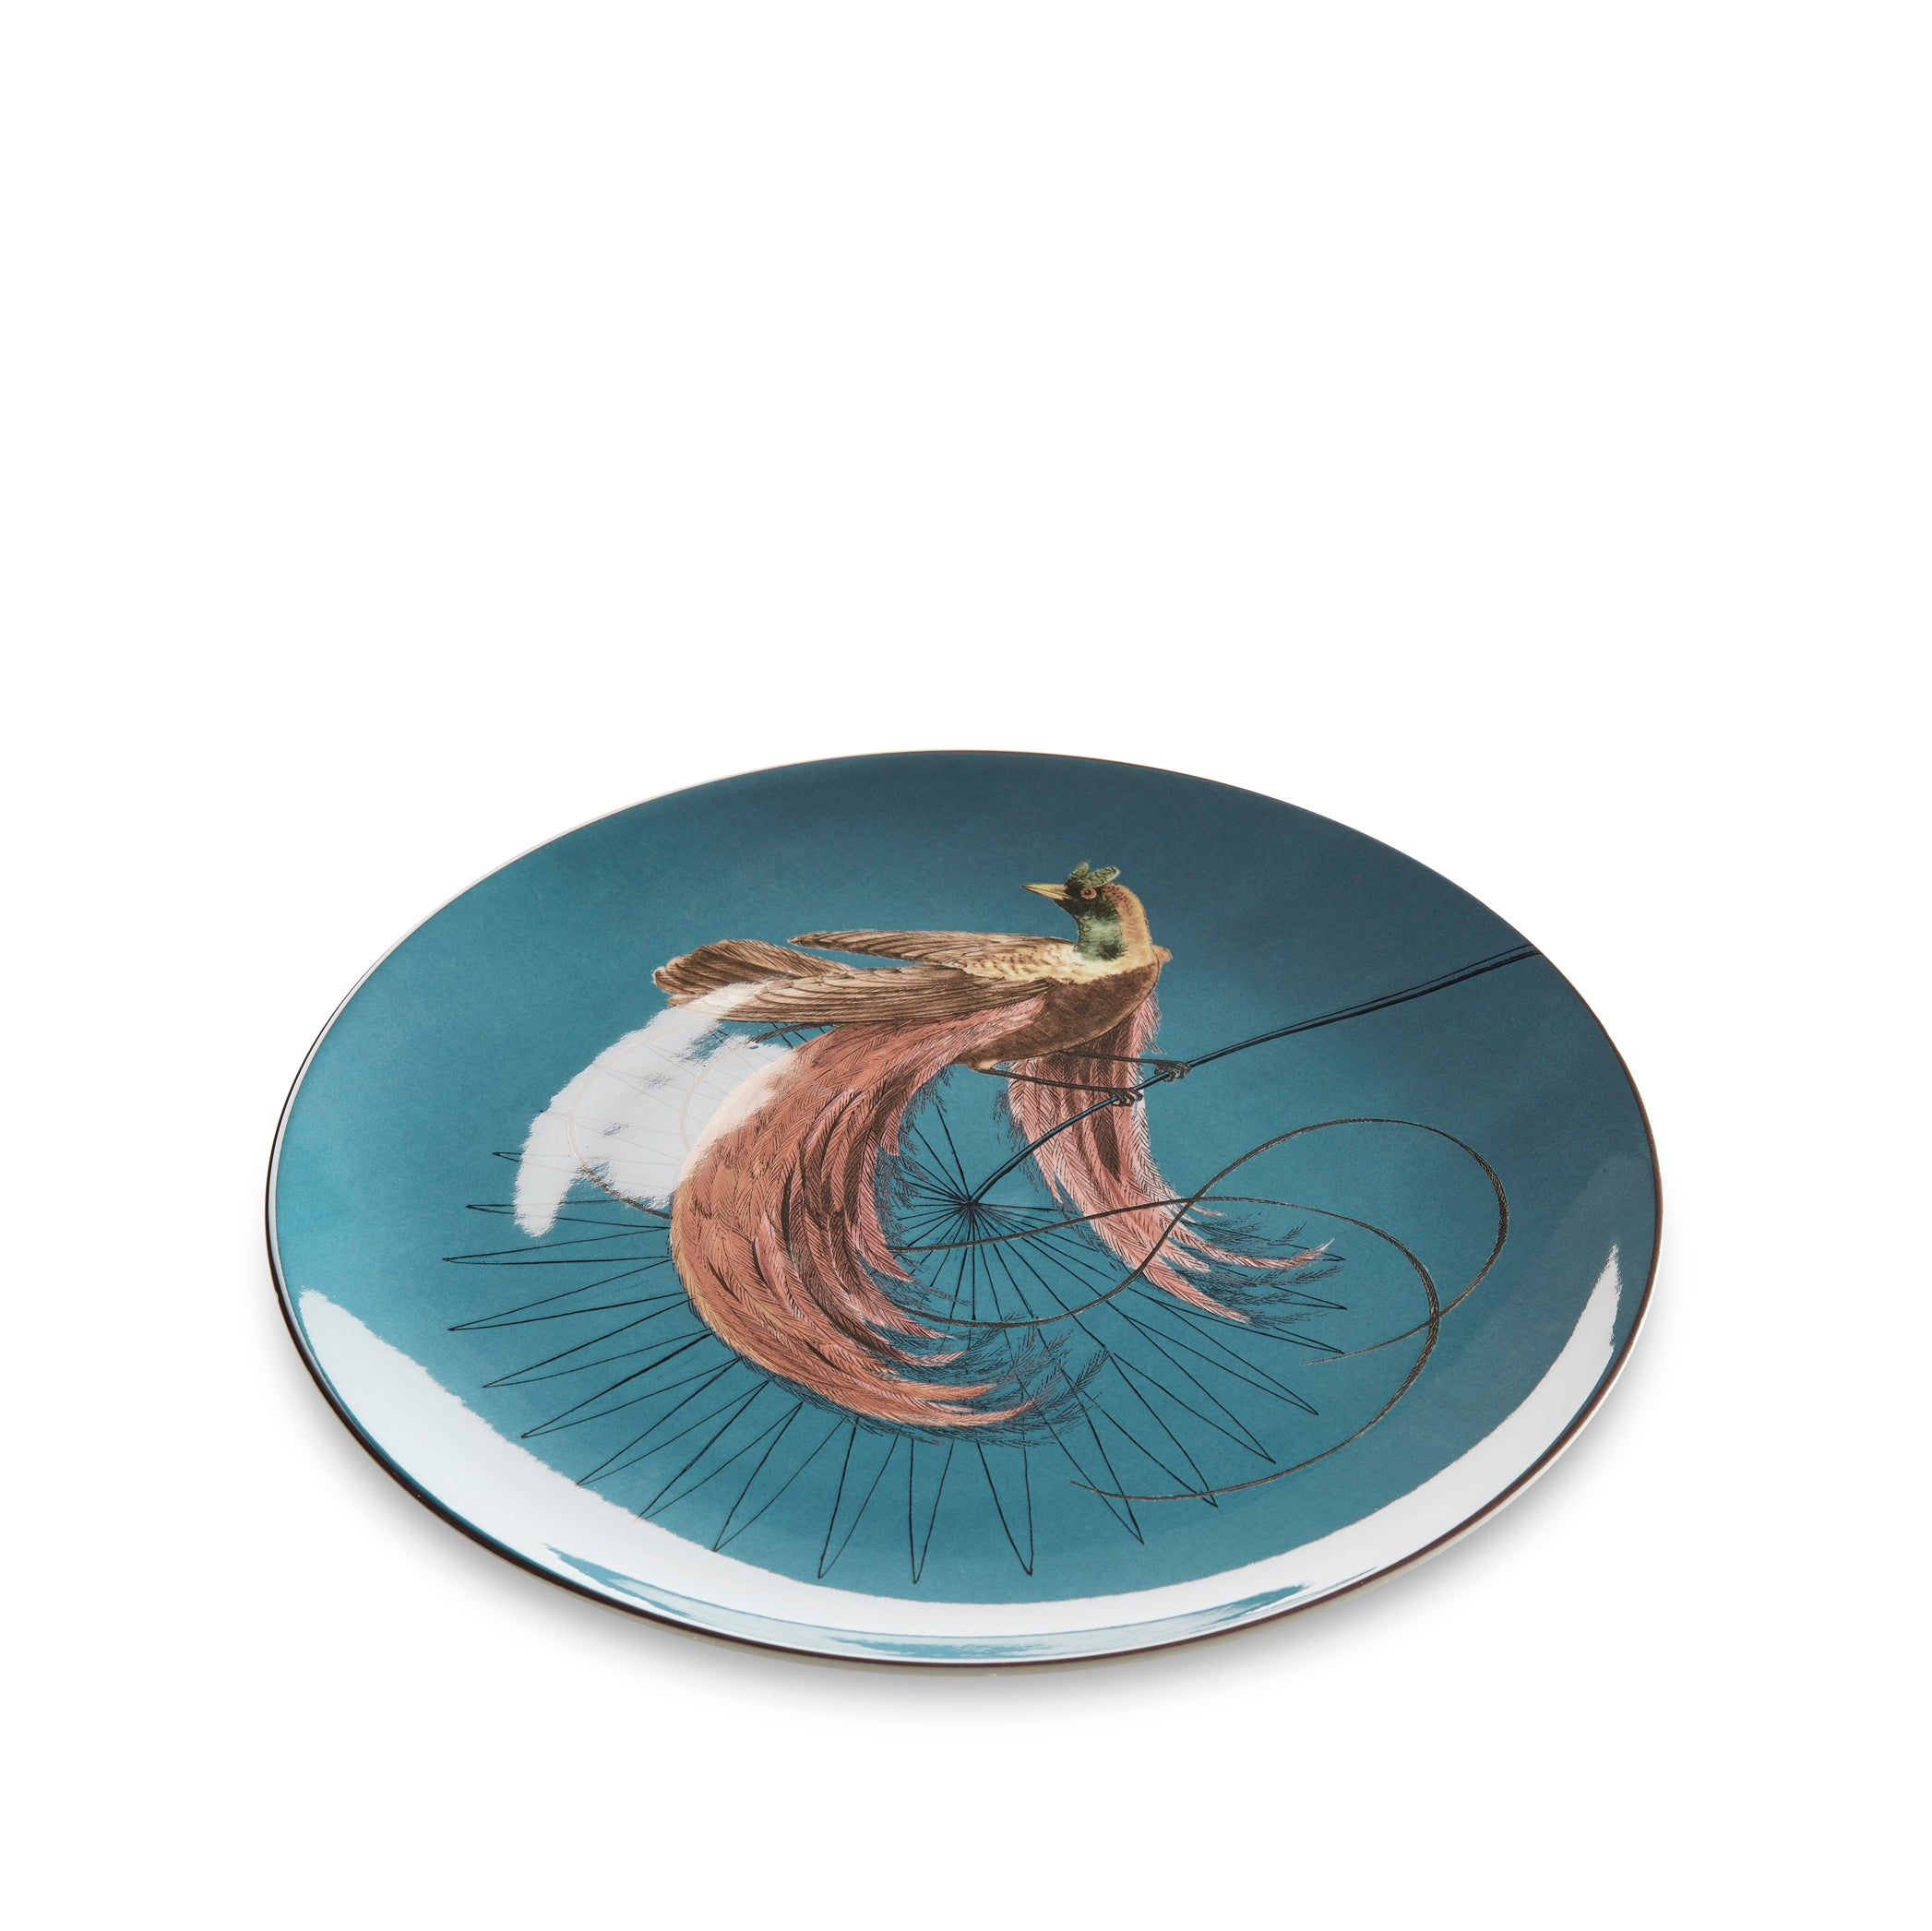 Bird Of Paradise 25cm Dinner Plate in Blue